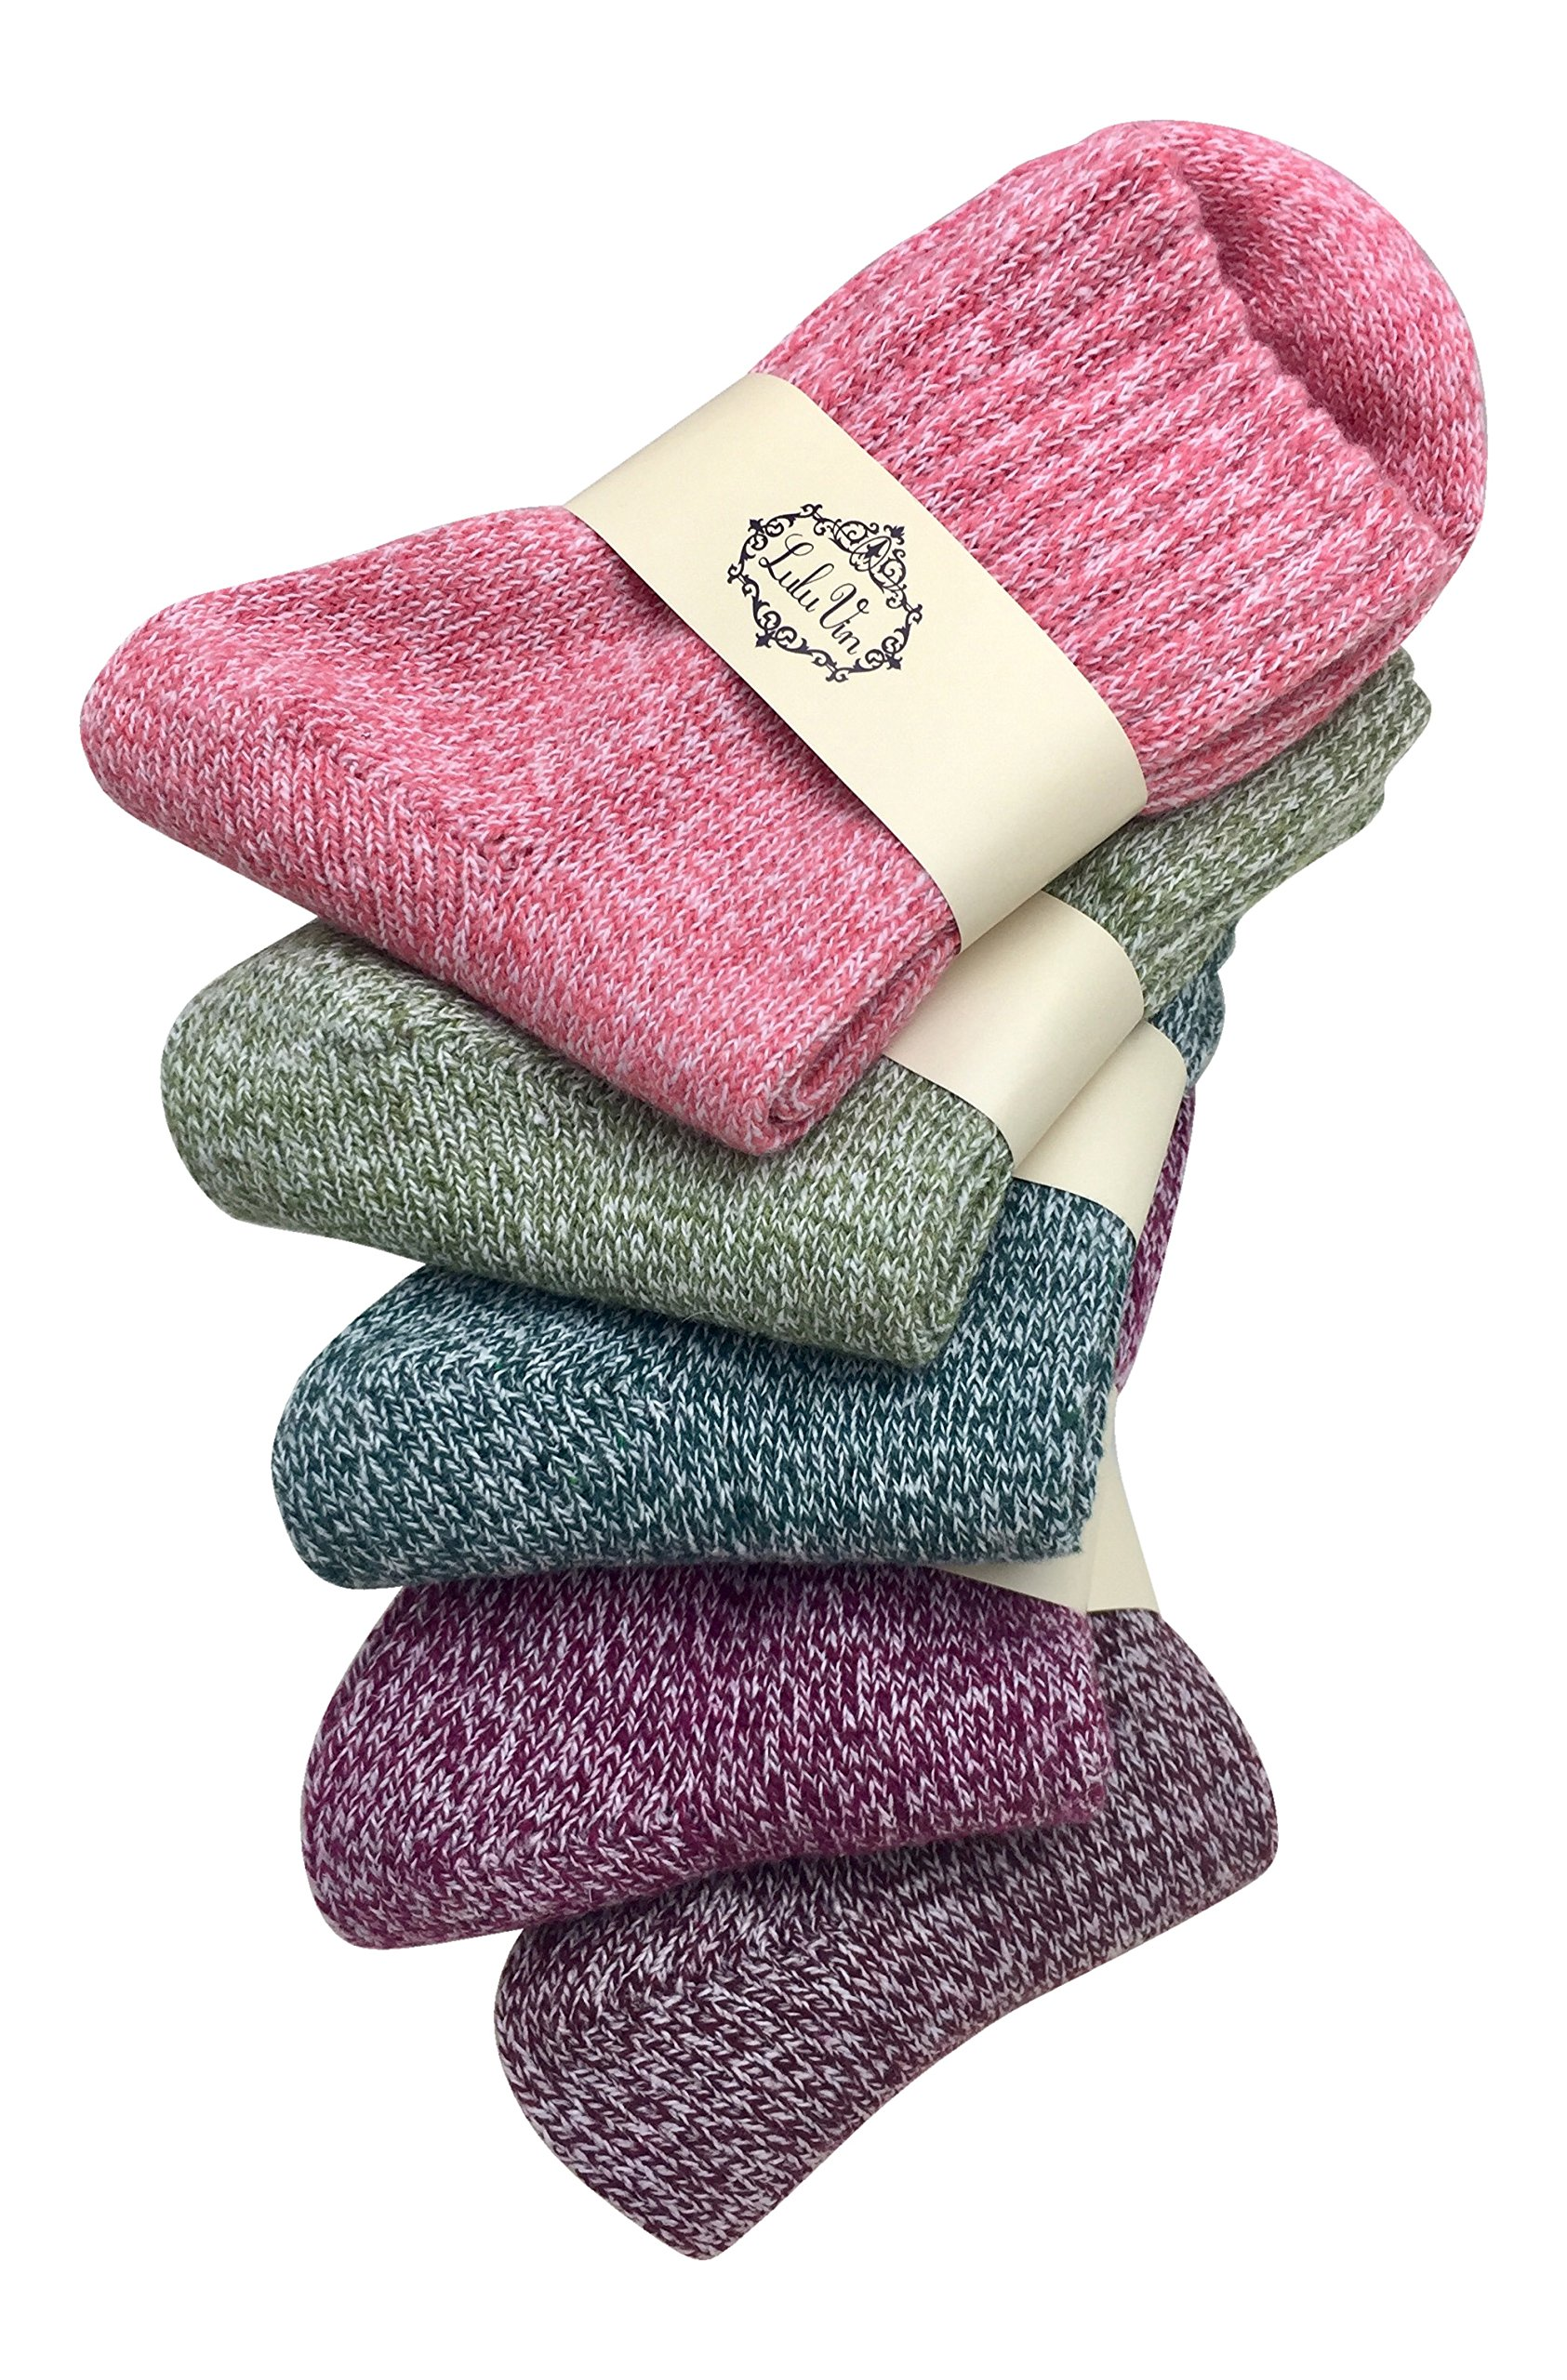 LuluVin's Women's Colorful Crew Vintage Inspired Knit Socks (5 Pairs) (Solids)